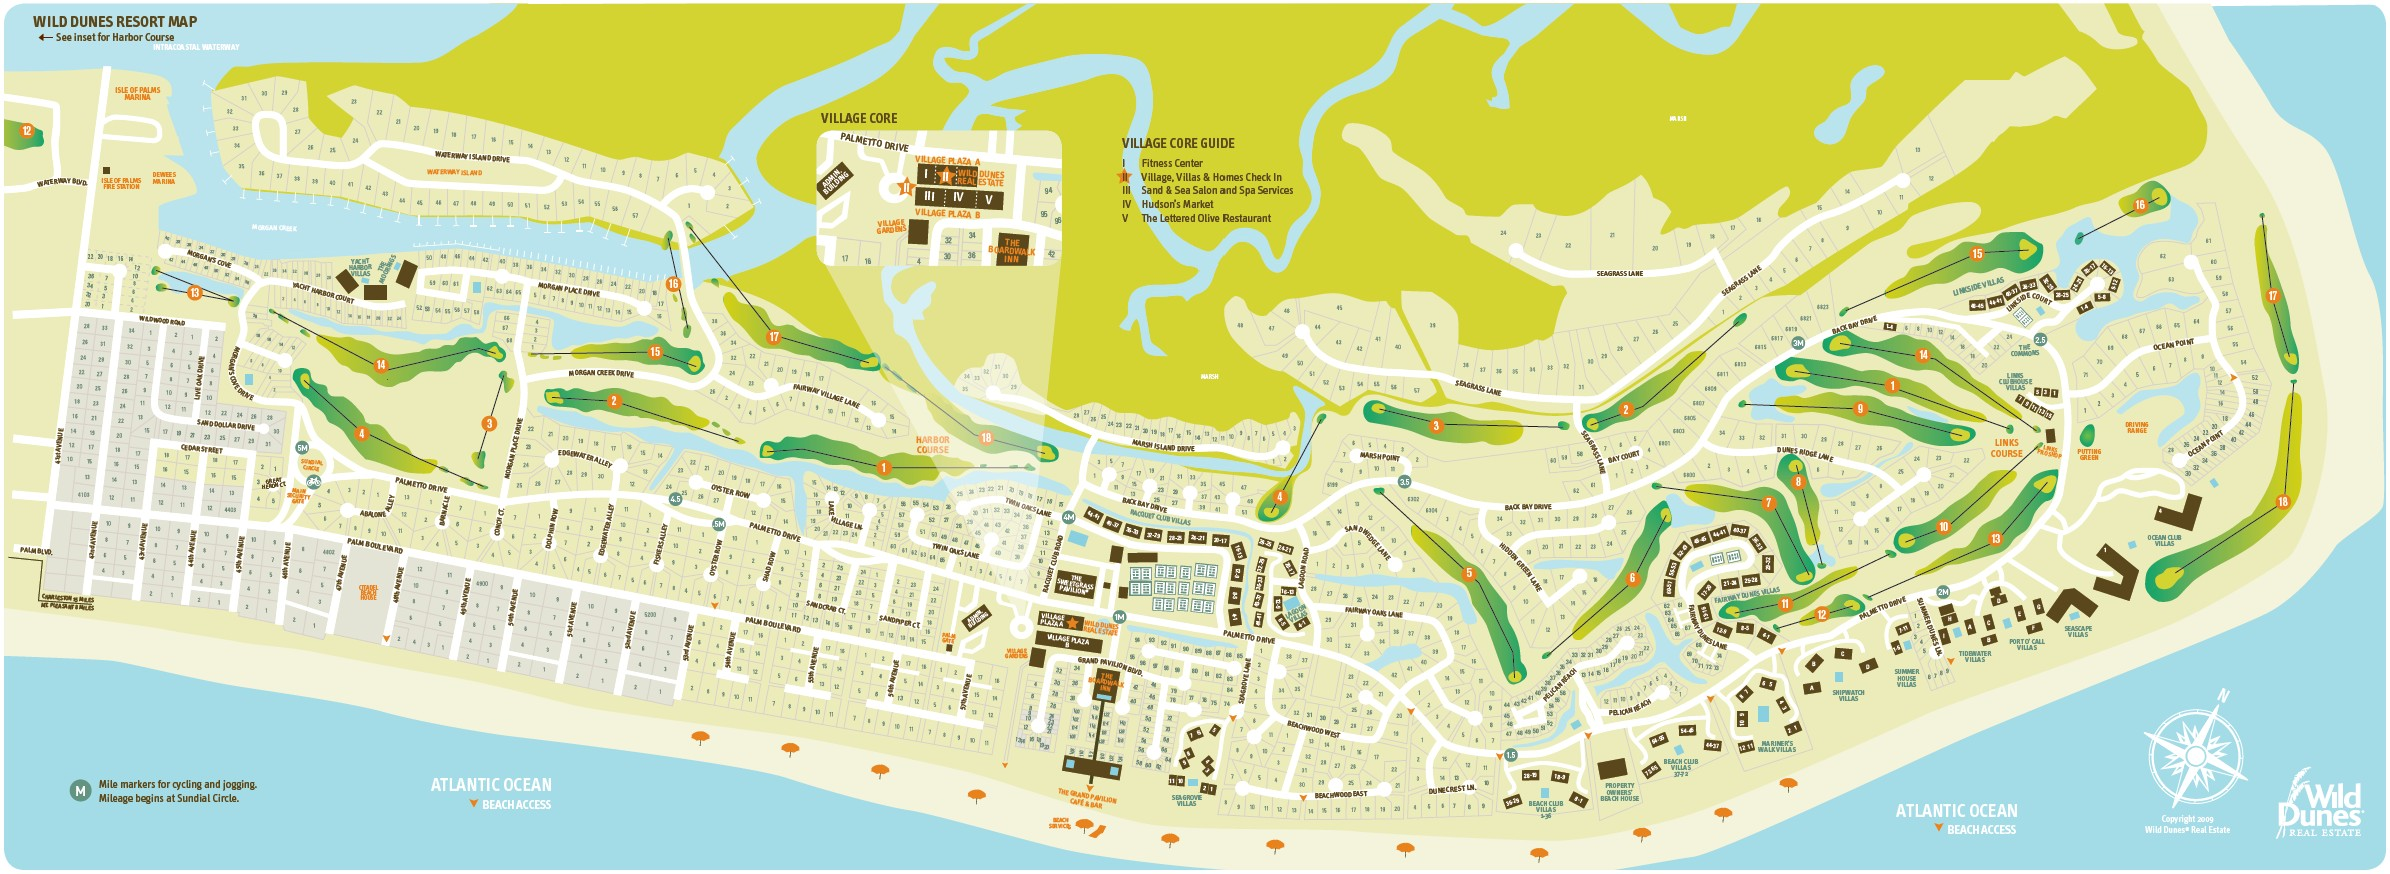 intercoastal waterway map with Wild Dunes on Florida Family Beach Vacations The Fun Coast furthermore 4442 Southport Marina NC United States besides Magenta Line likewise 228921289 furthermore Barefoot Resort.